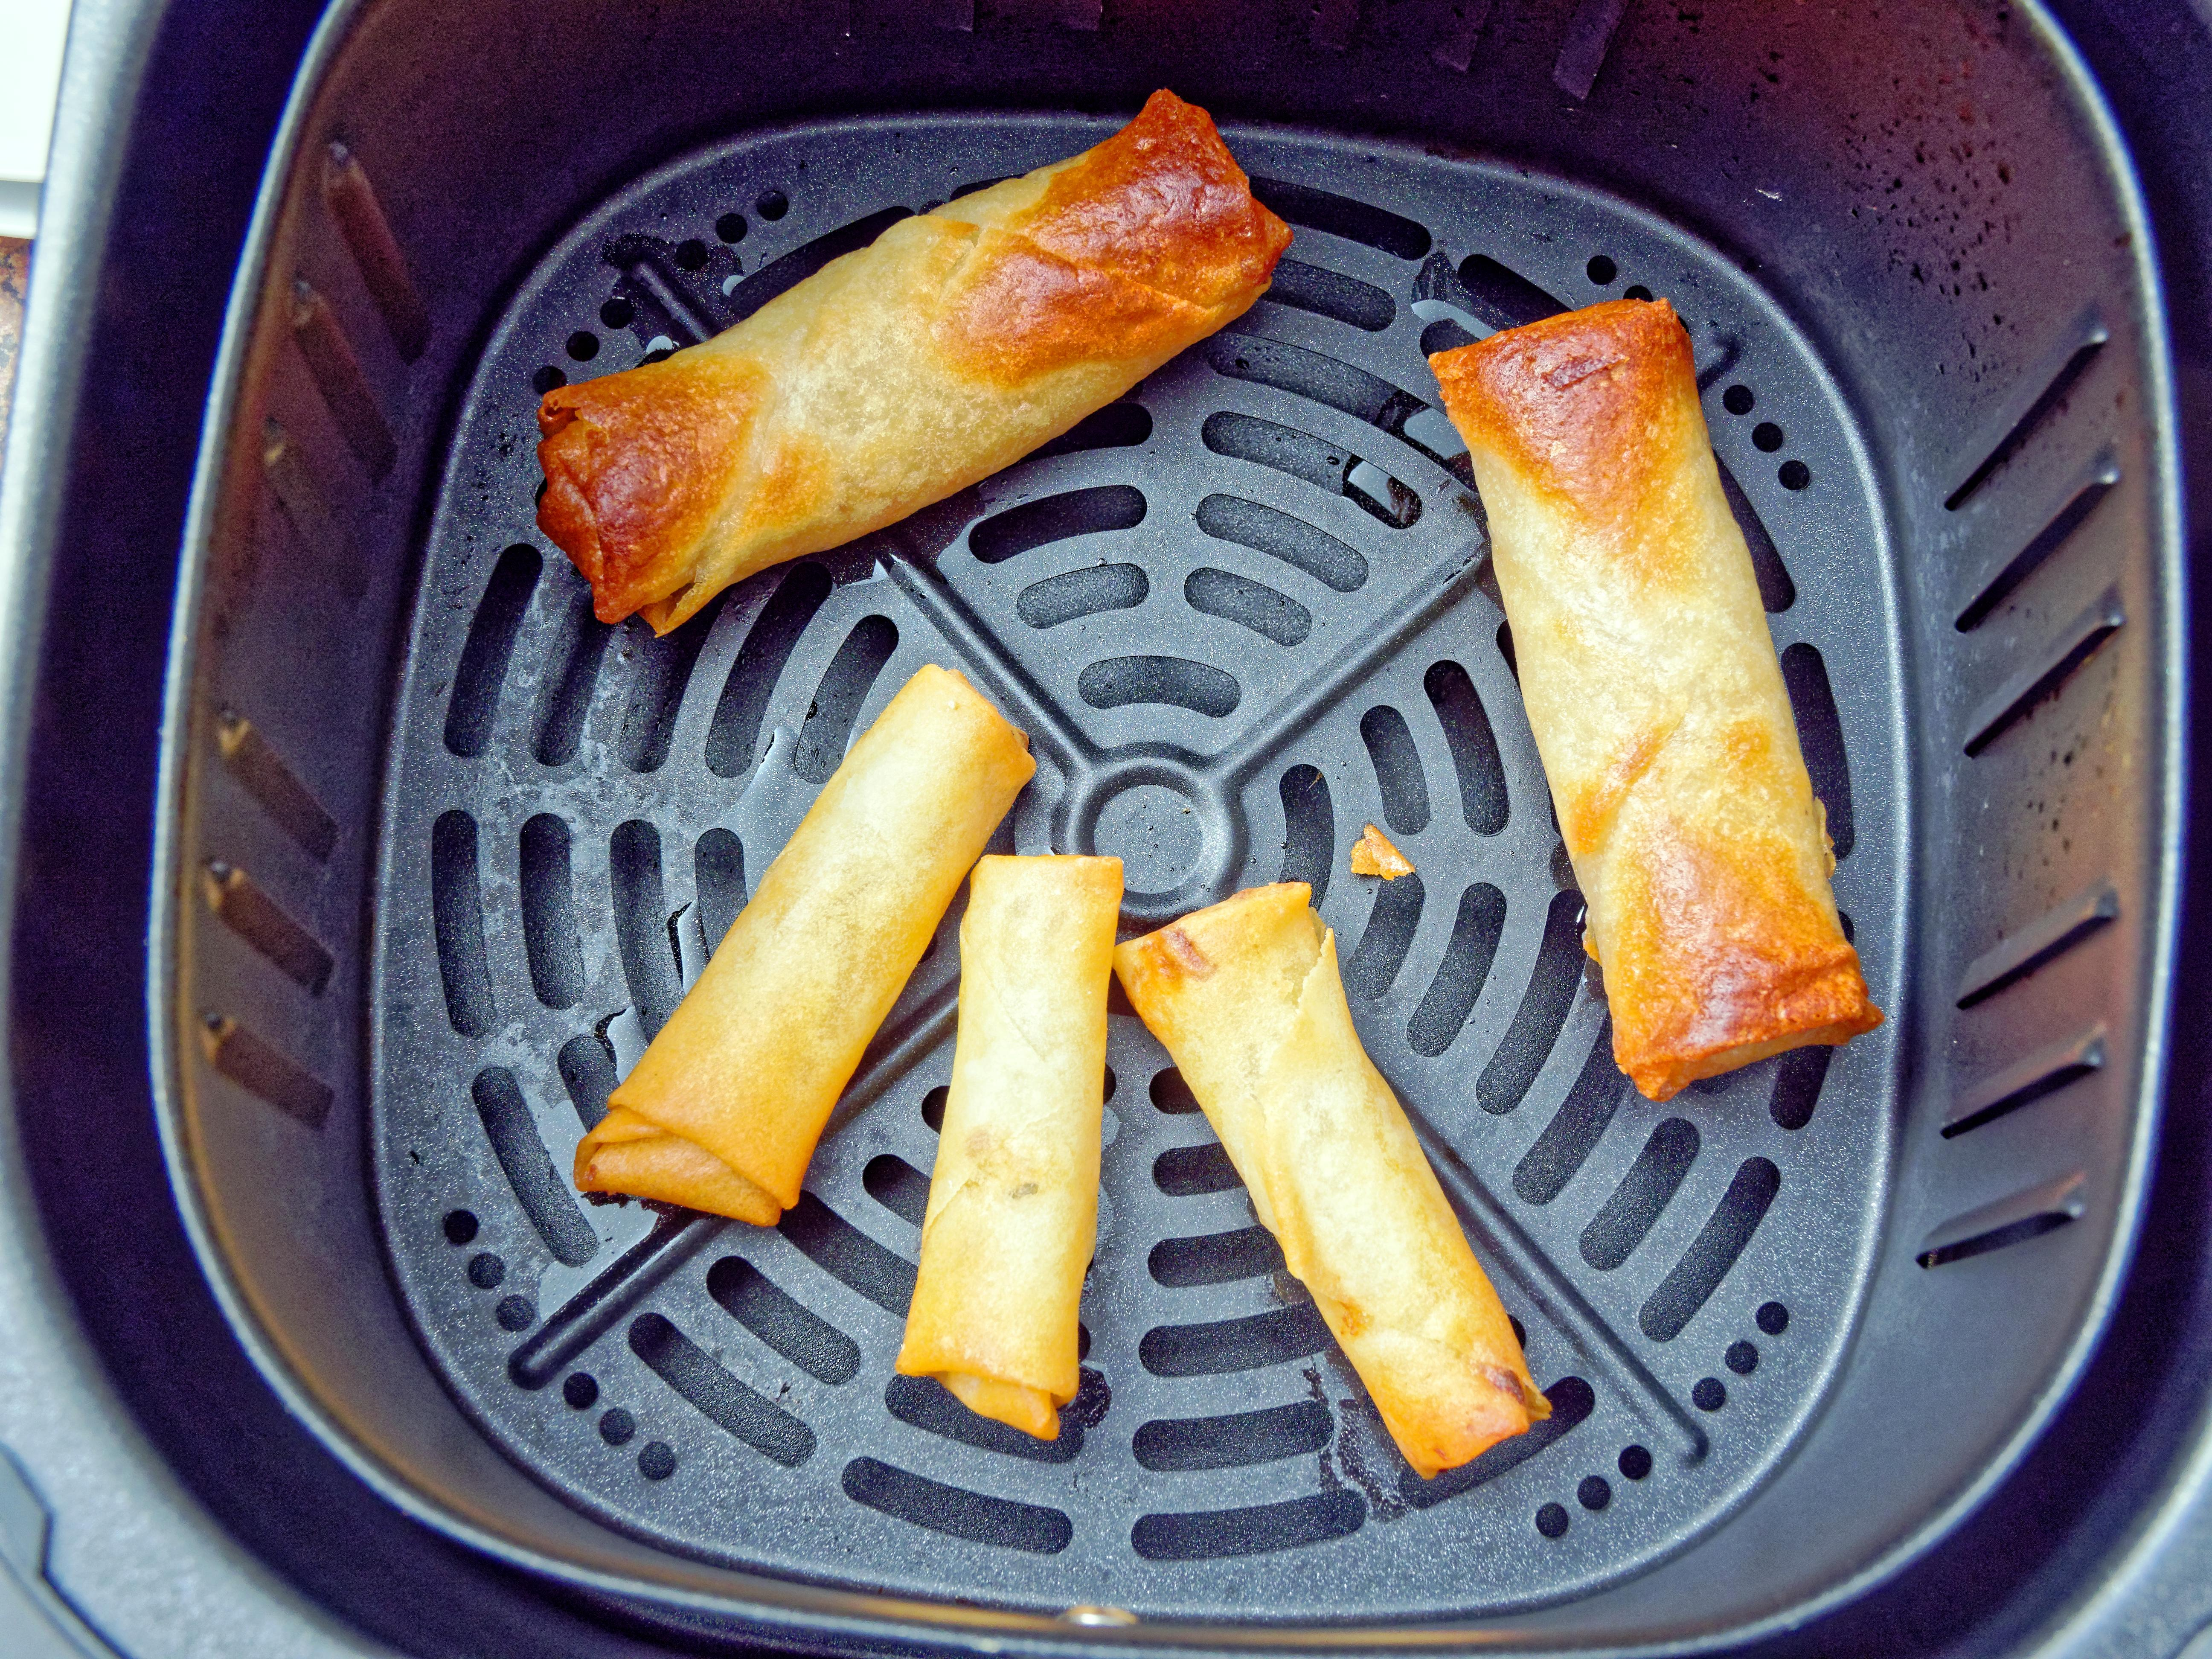 This should be Spring-Rolls-2.jpeg.  Is it missing?